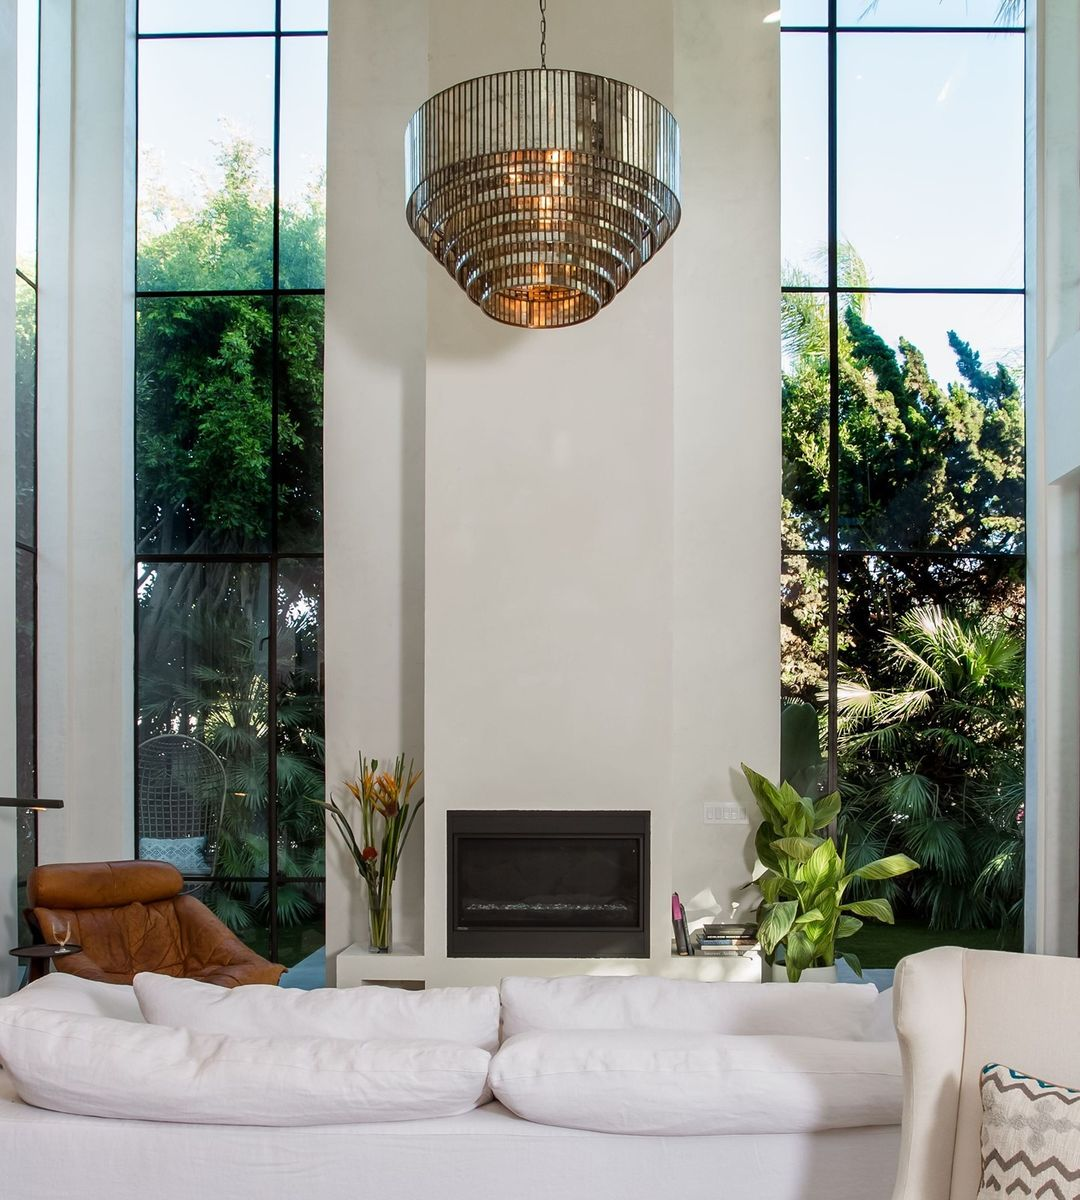 the best interior designers in los angeles The Best Interior Designers In Los Angeles – Part 1 kimgordondesigns 184003024 154395656672277 561198836994089547 n